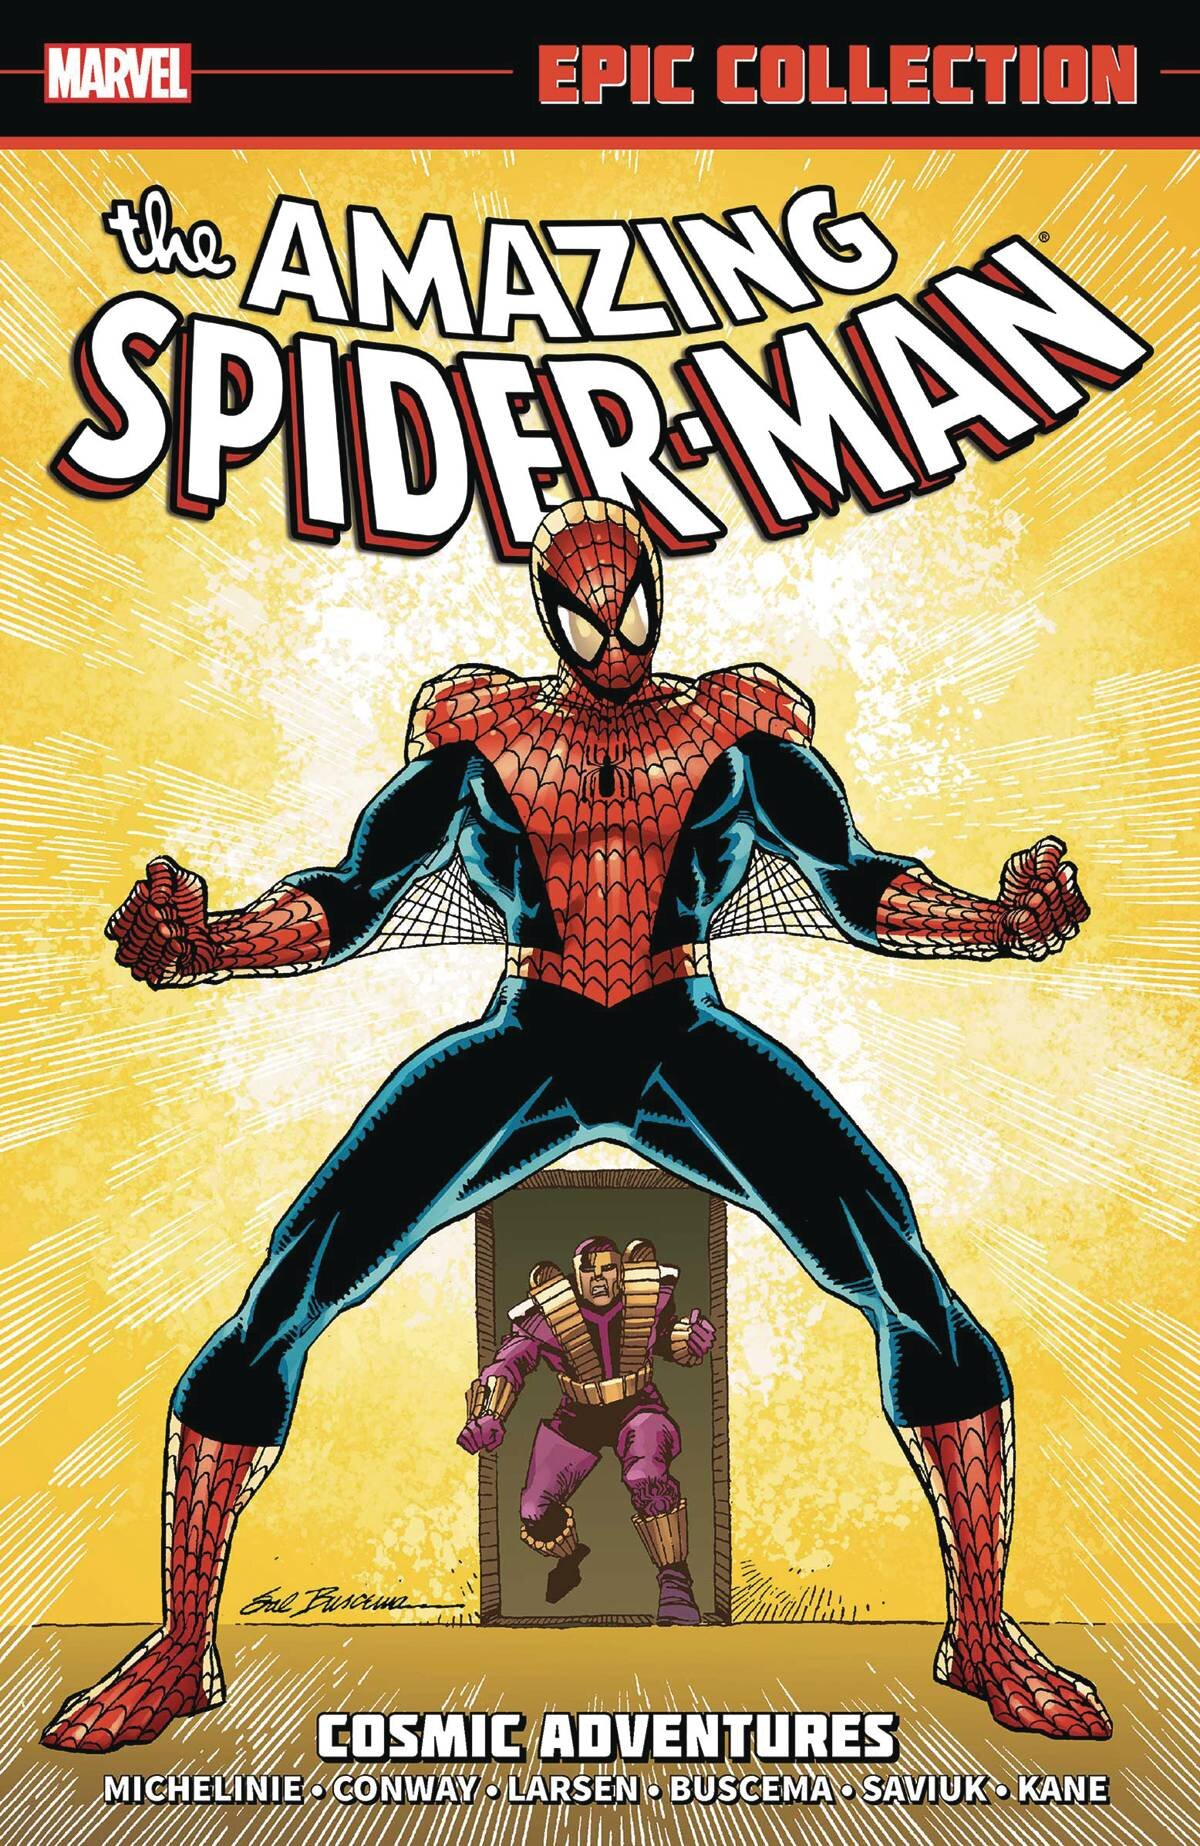 AMAZING SPIDER-MAN EPIC COLLECT TP COSMIC ADVENTURES NEW PTG.jpg